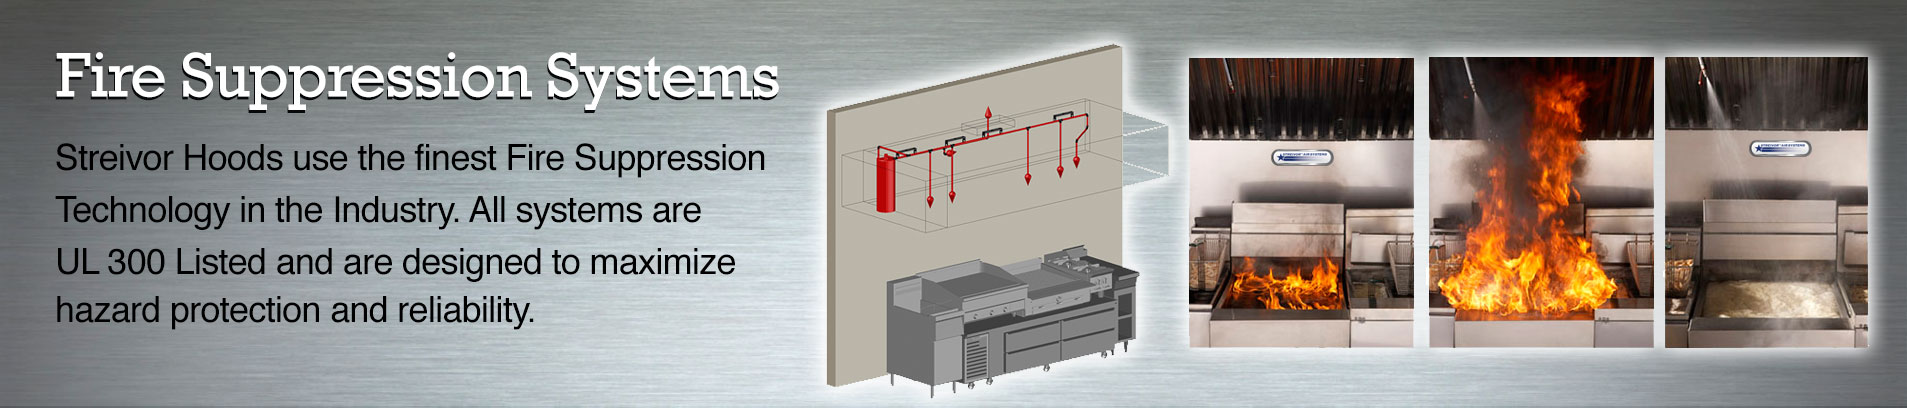 Fire Suppression Systems for CKV Kitchens